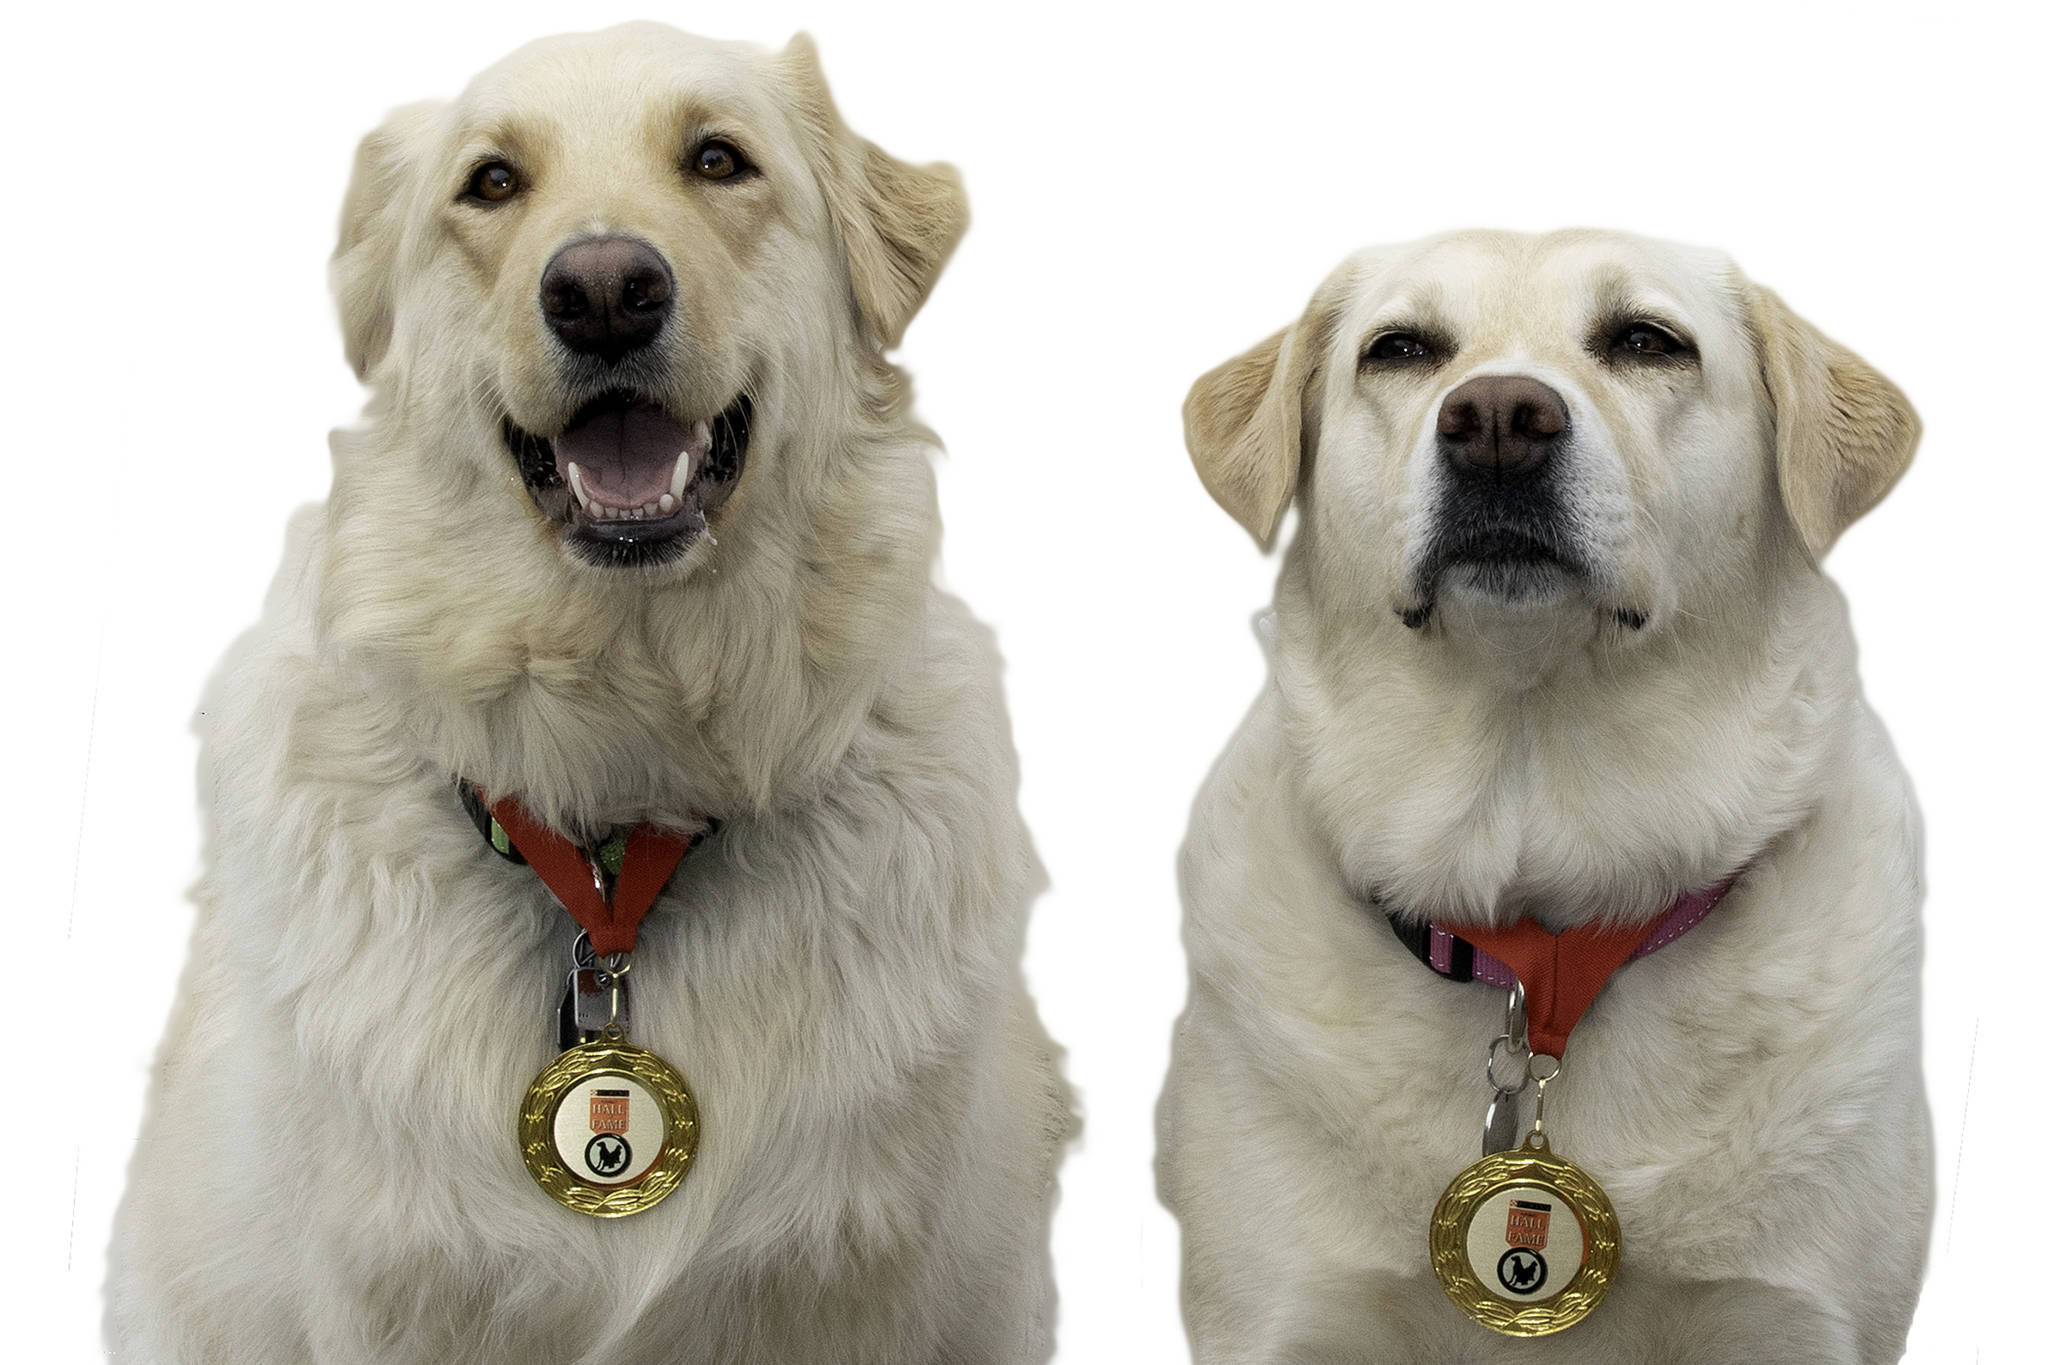 Lady and Ruth have been inducted into the Purina Animal Hall of Fame for their life-saving efforts last year to save their owner who crashed off Westside Road. (Darren Hull image)